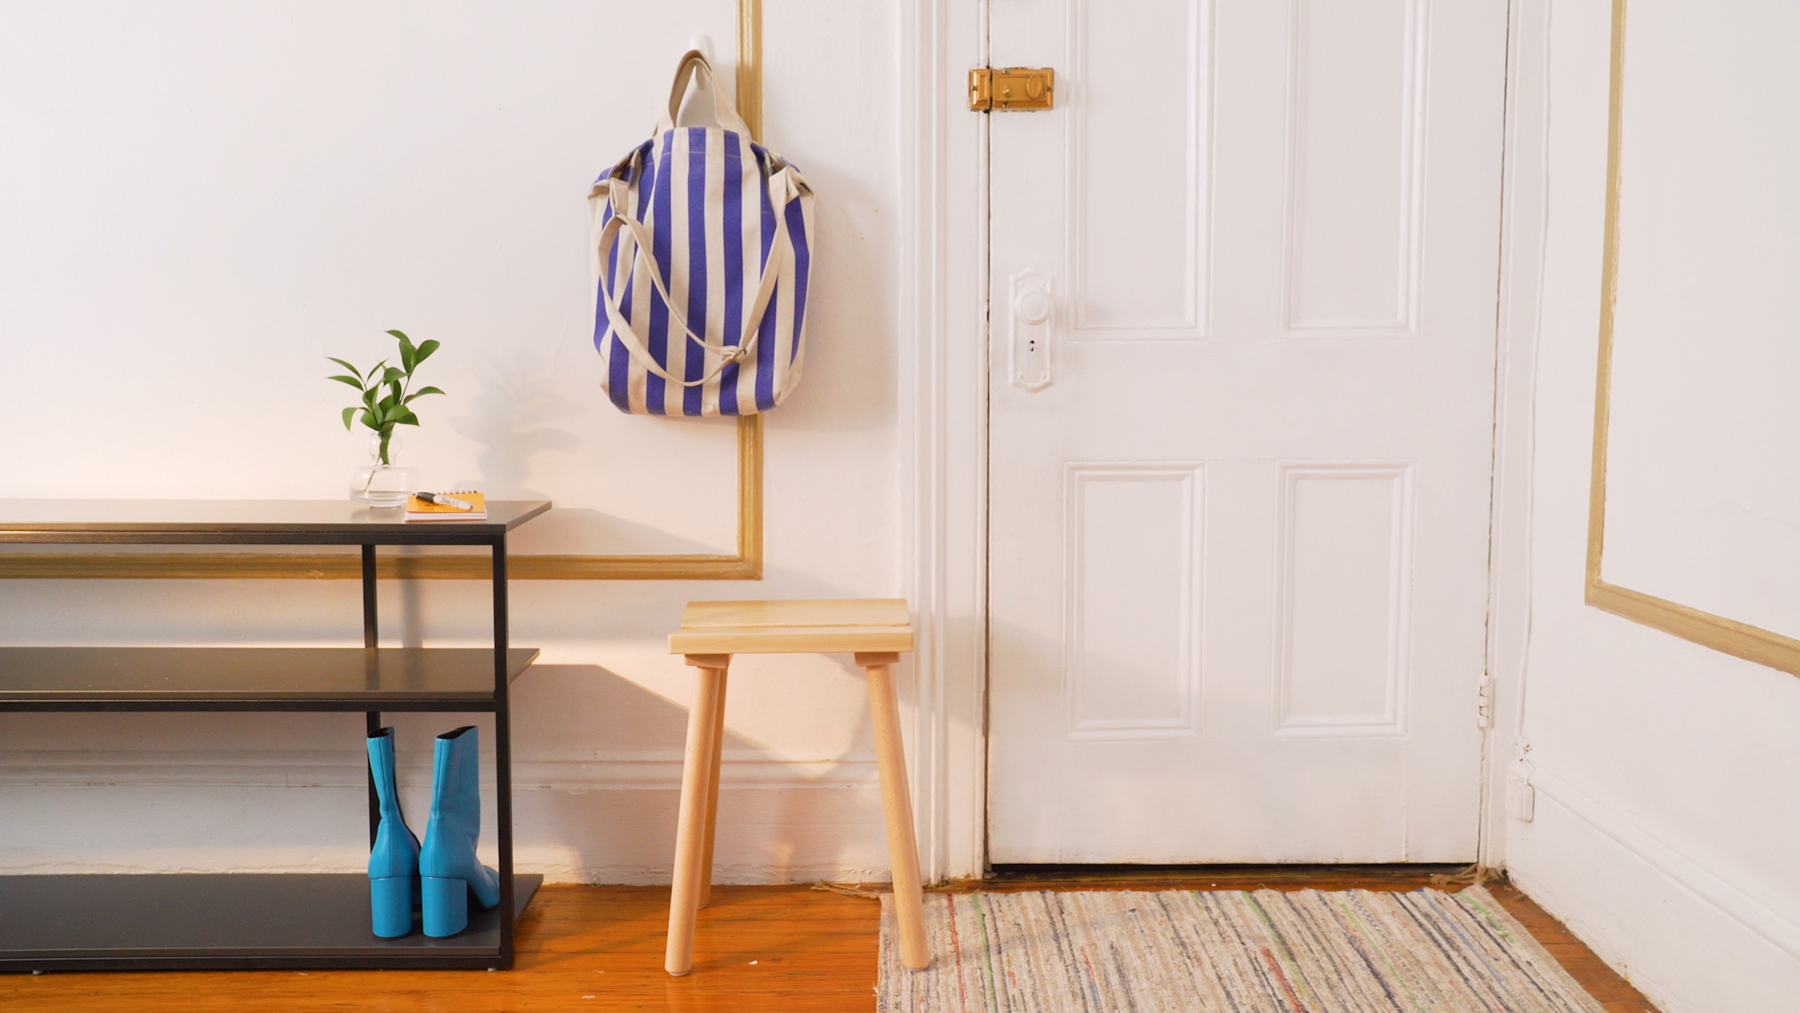 Faking an entryway